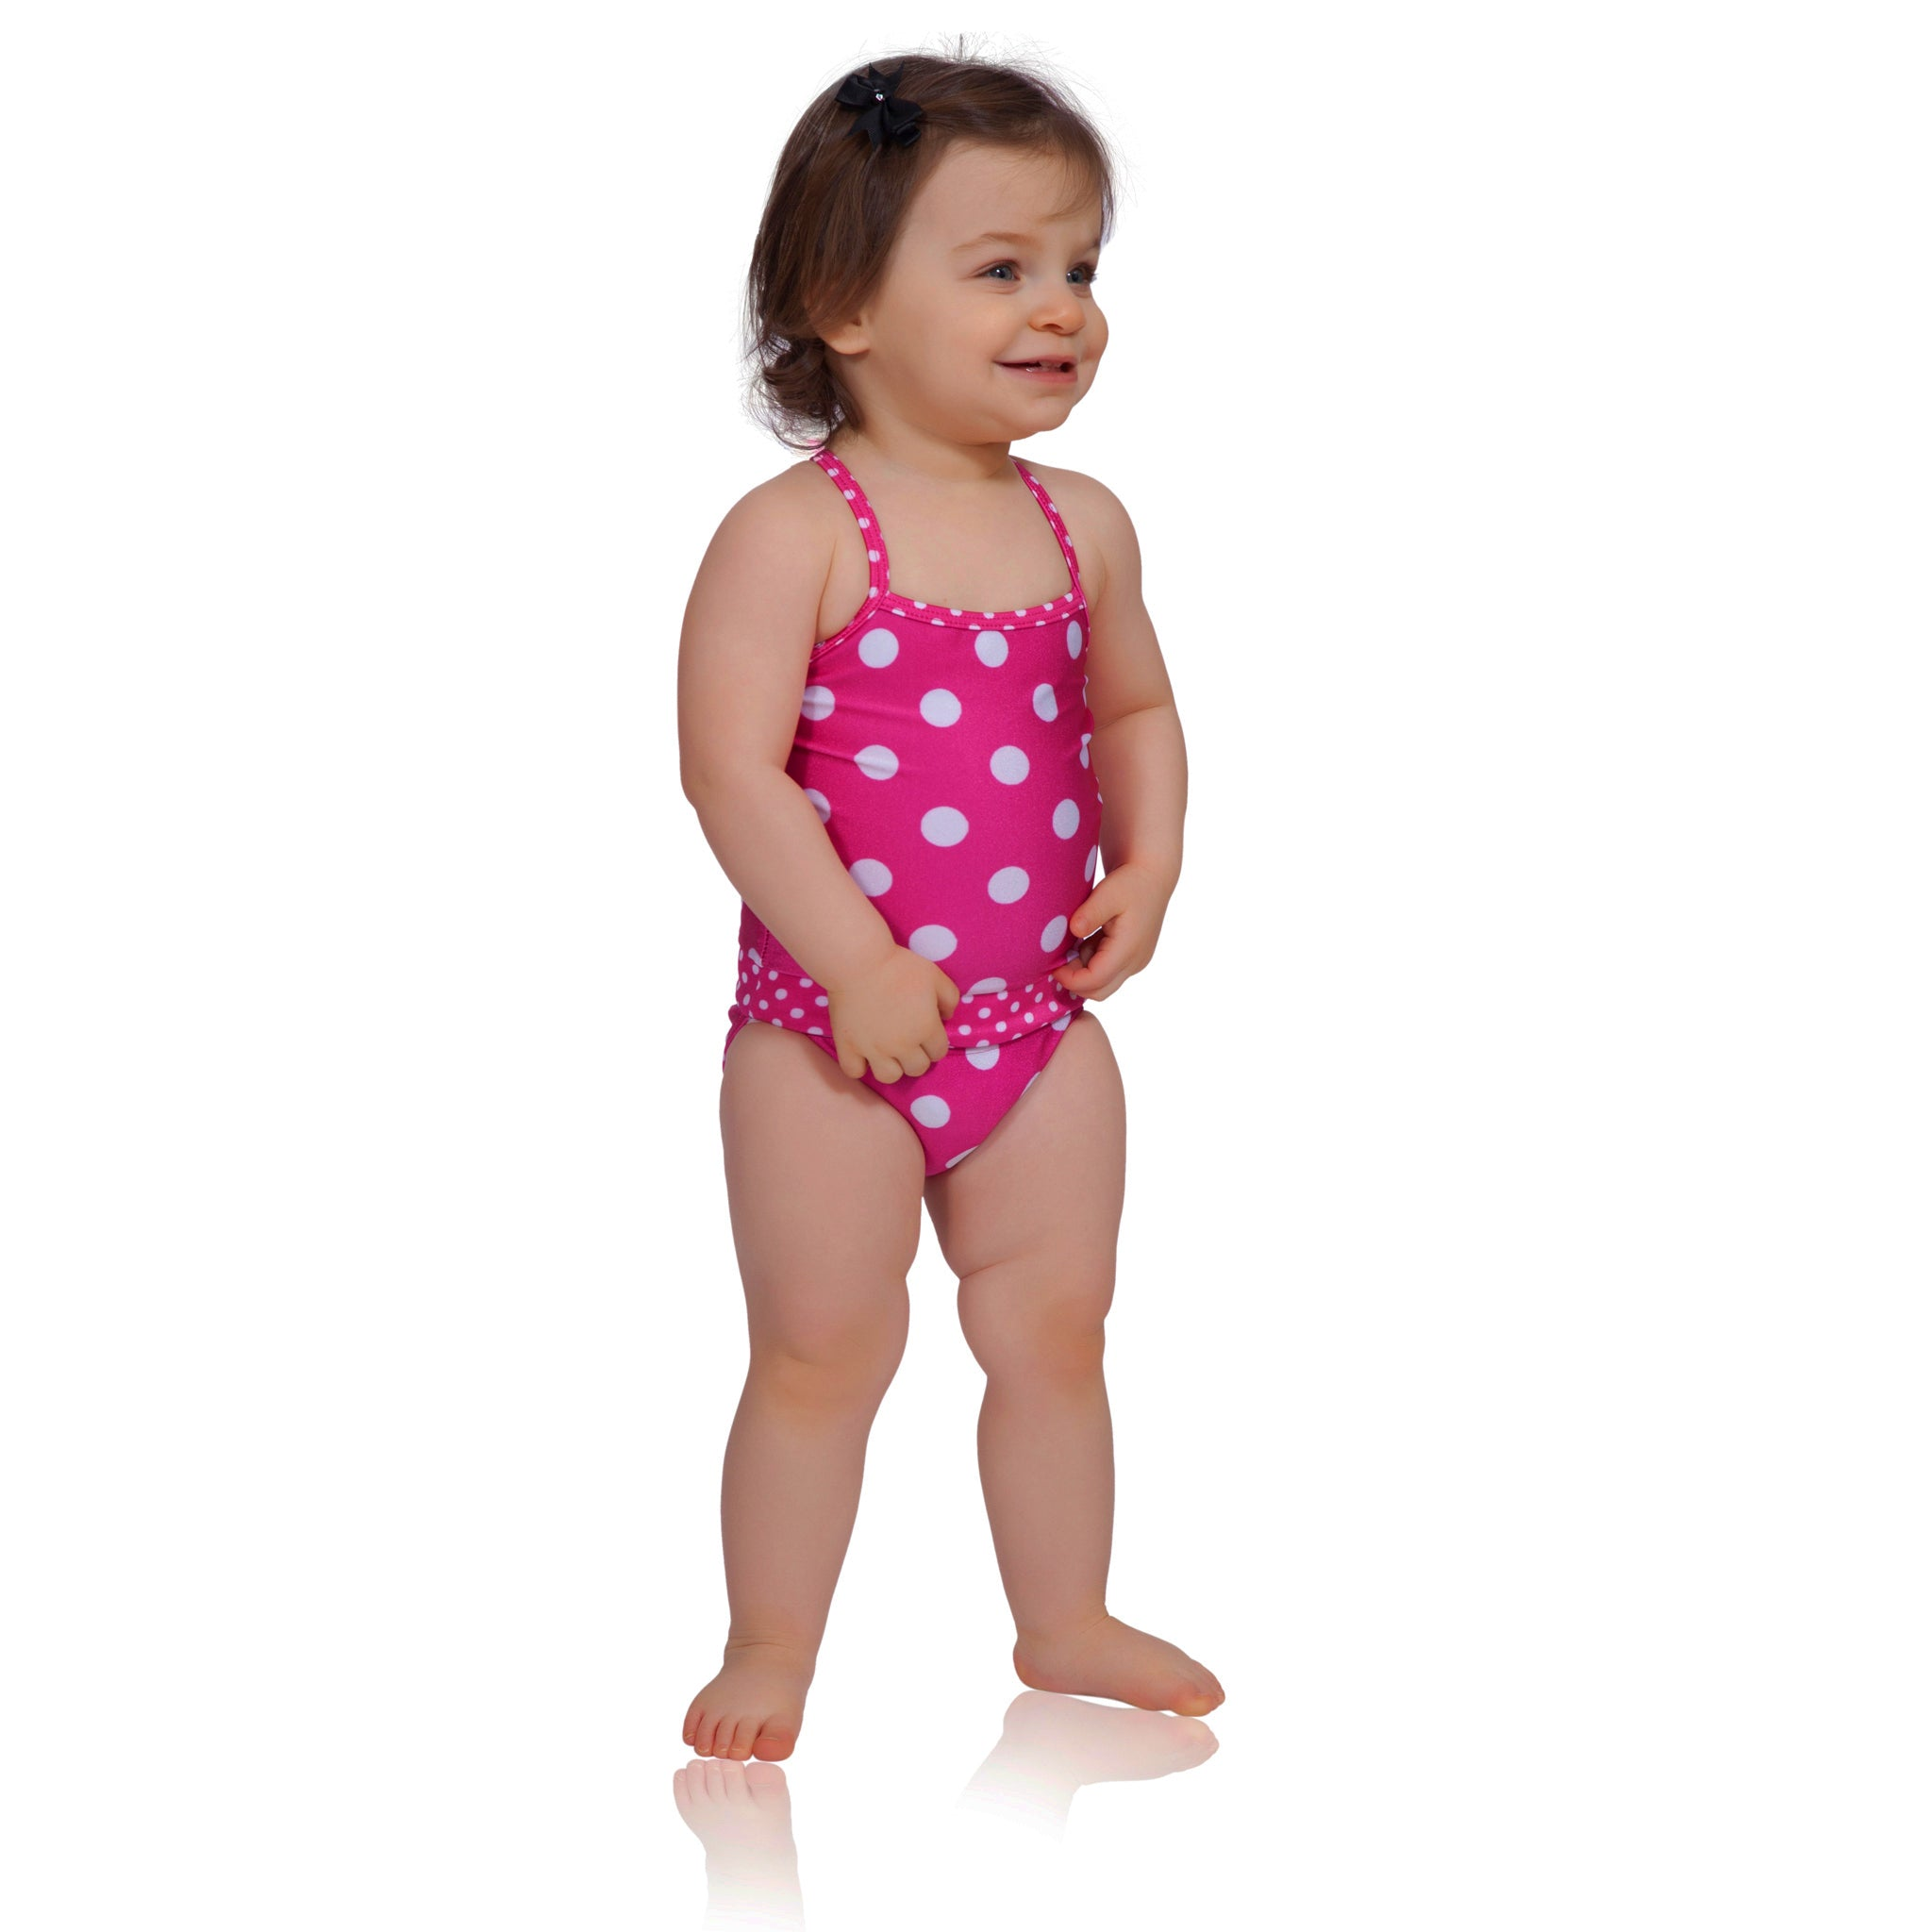 Watermelon polka dot baby girl swimsuit by FASTEN. Revolutionary easy change swimsuits feature magnetic closures that make for easier parenting and quicker diaper changes. Sizes 6m-18m. Polka dot swimsuit for infant girls.